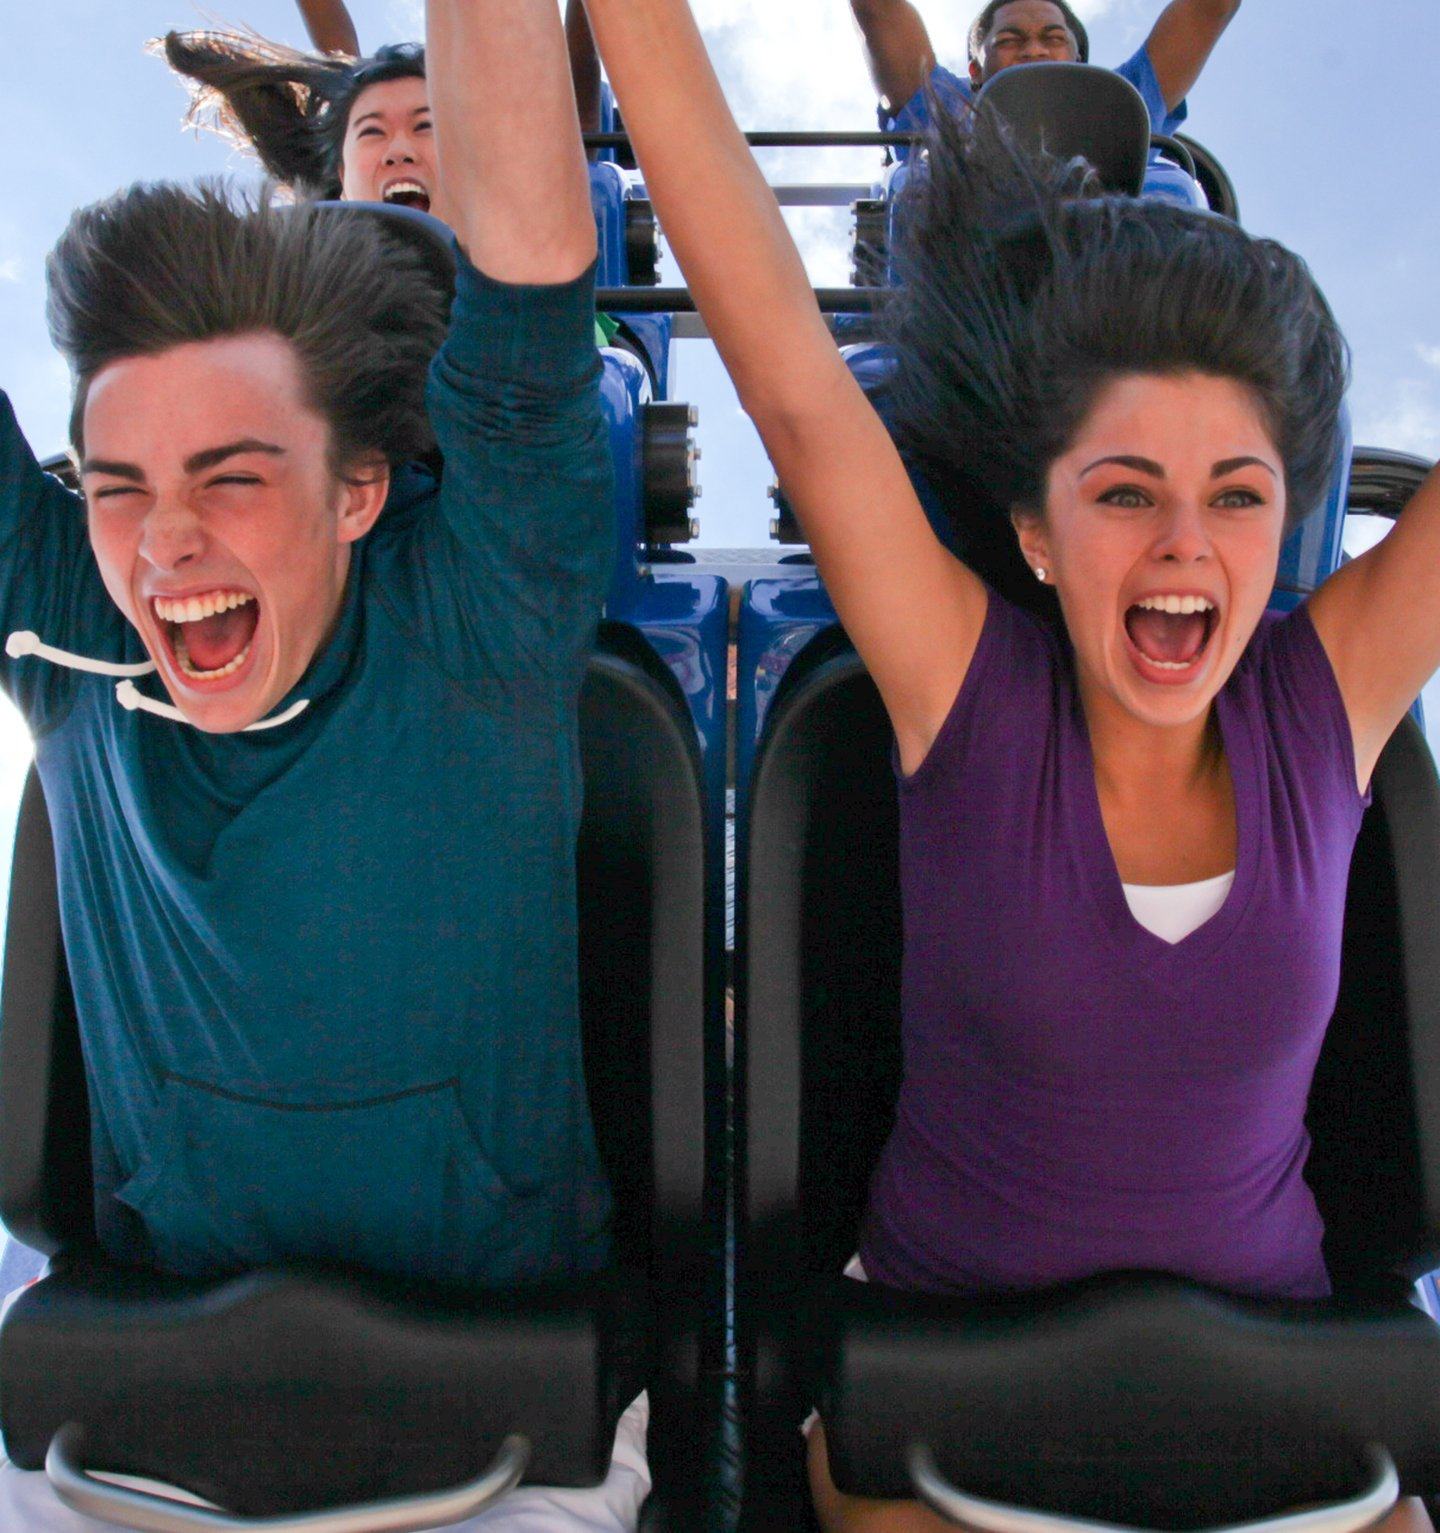 People riding on a coaster with their hands in the air.